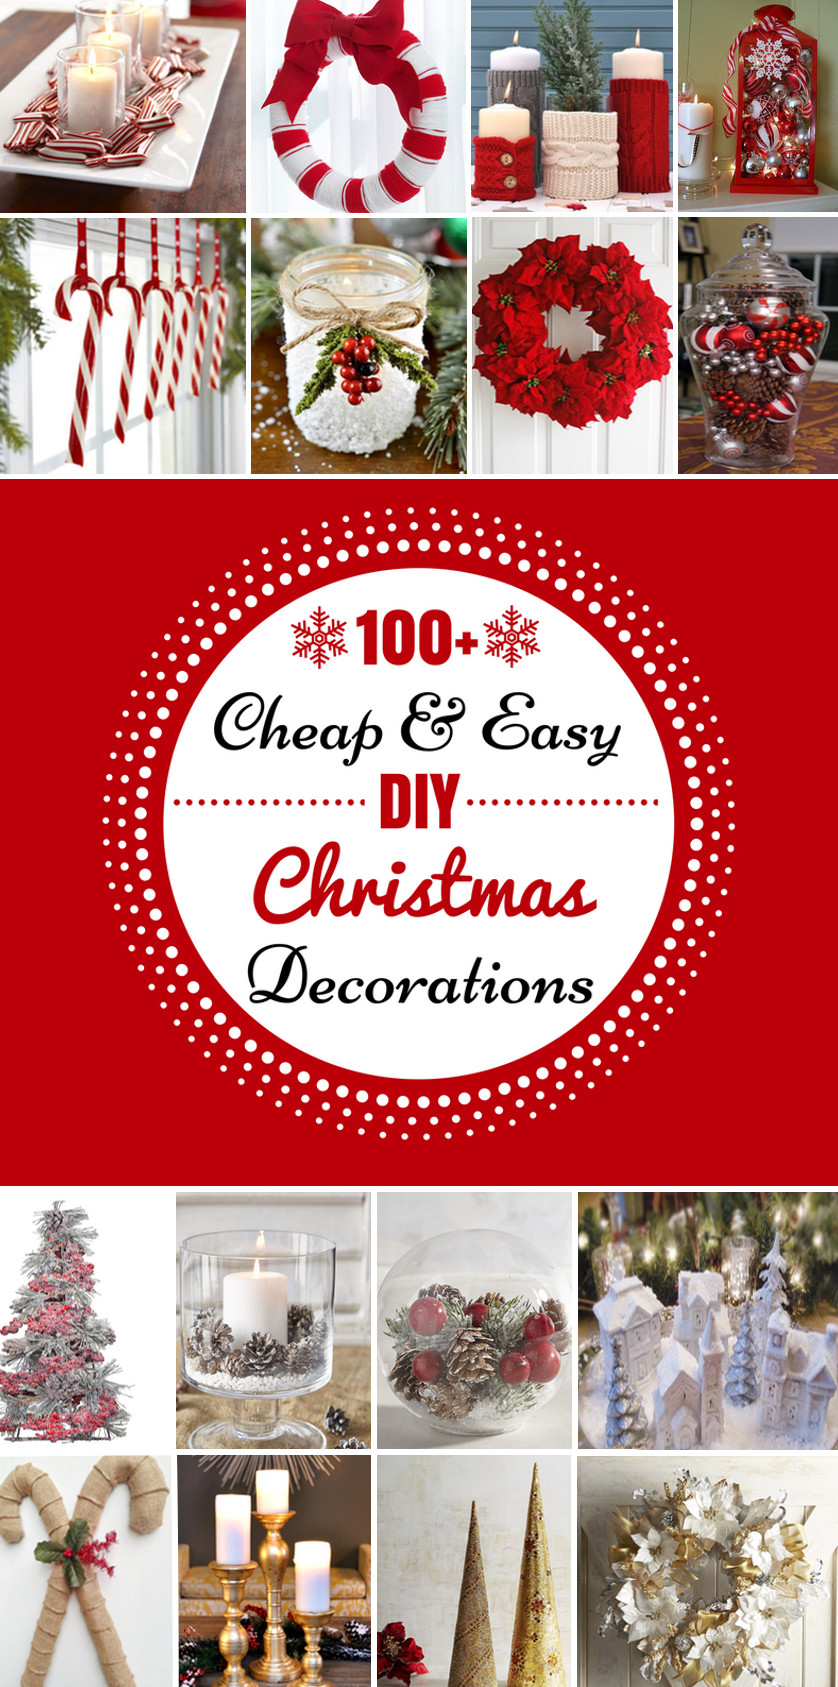 Best ideas about Christmas DIY Decorations . Save or Pin 100 Cheap & Easy DIY Christmas Decorations Prudent Penny Now.